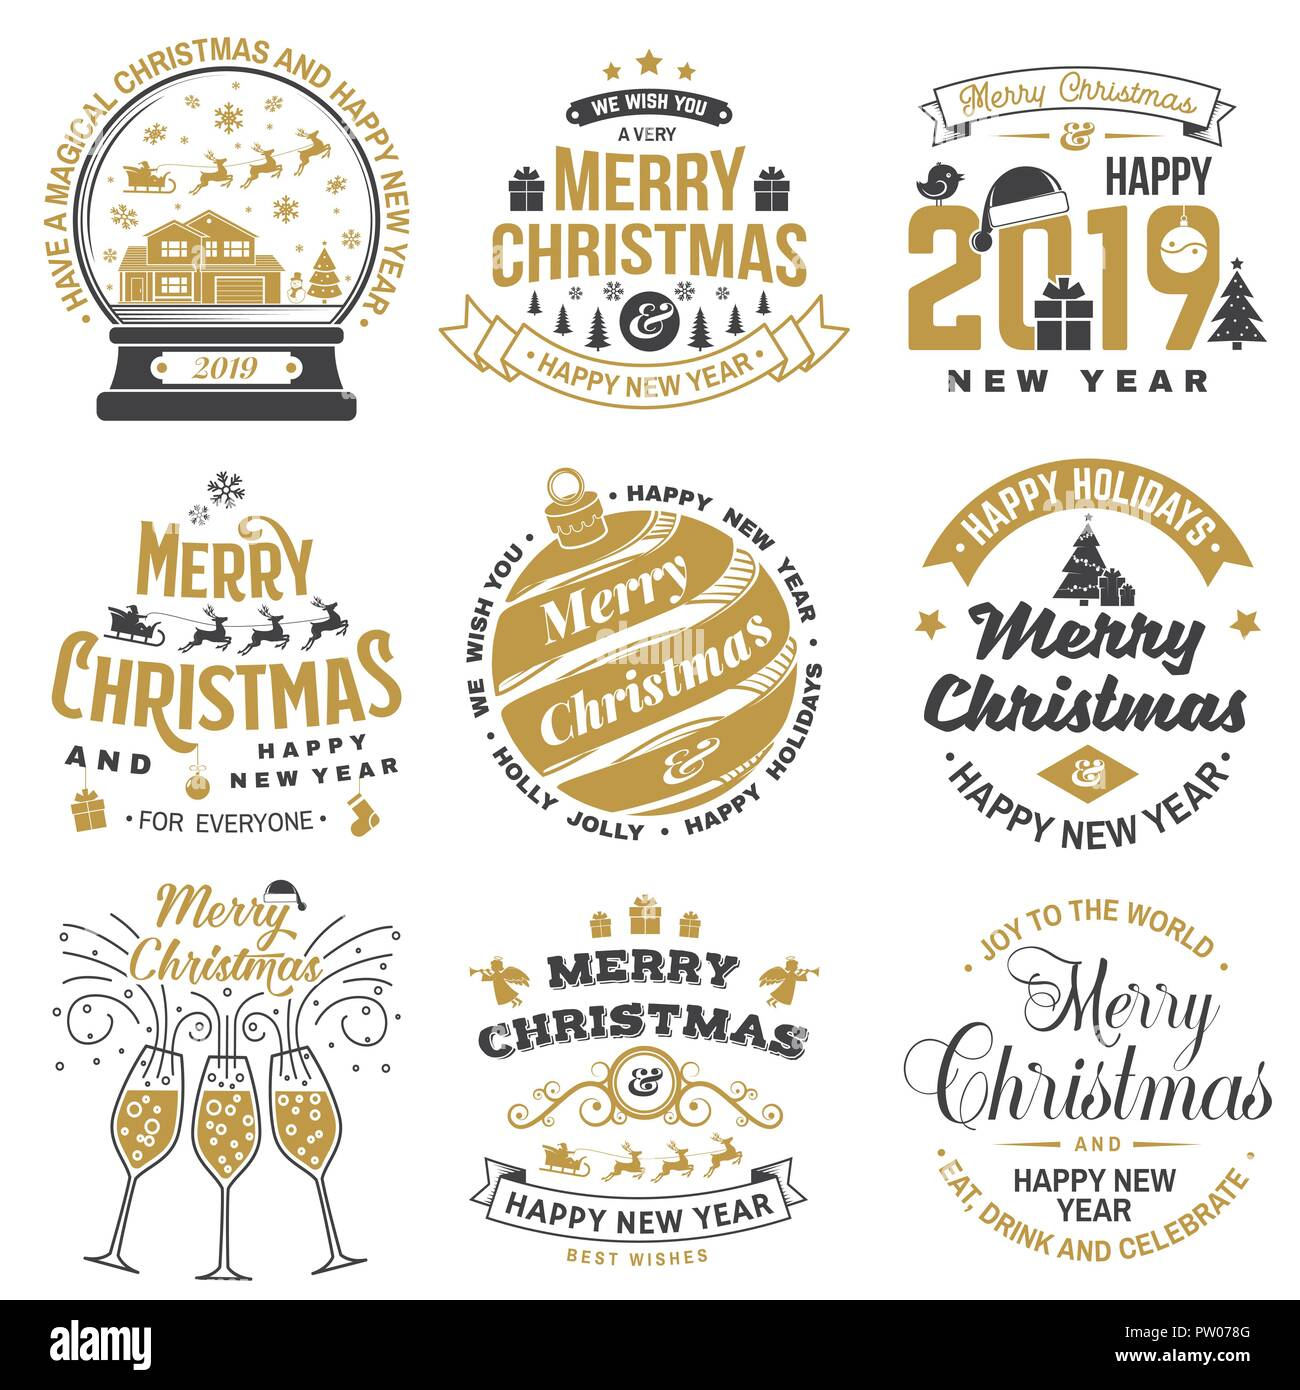 Christmas Stamps For 2019 Set of Merry Christmas and 2019 Happy New Year stamp, sticker set